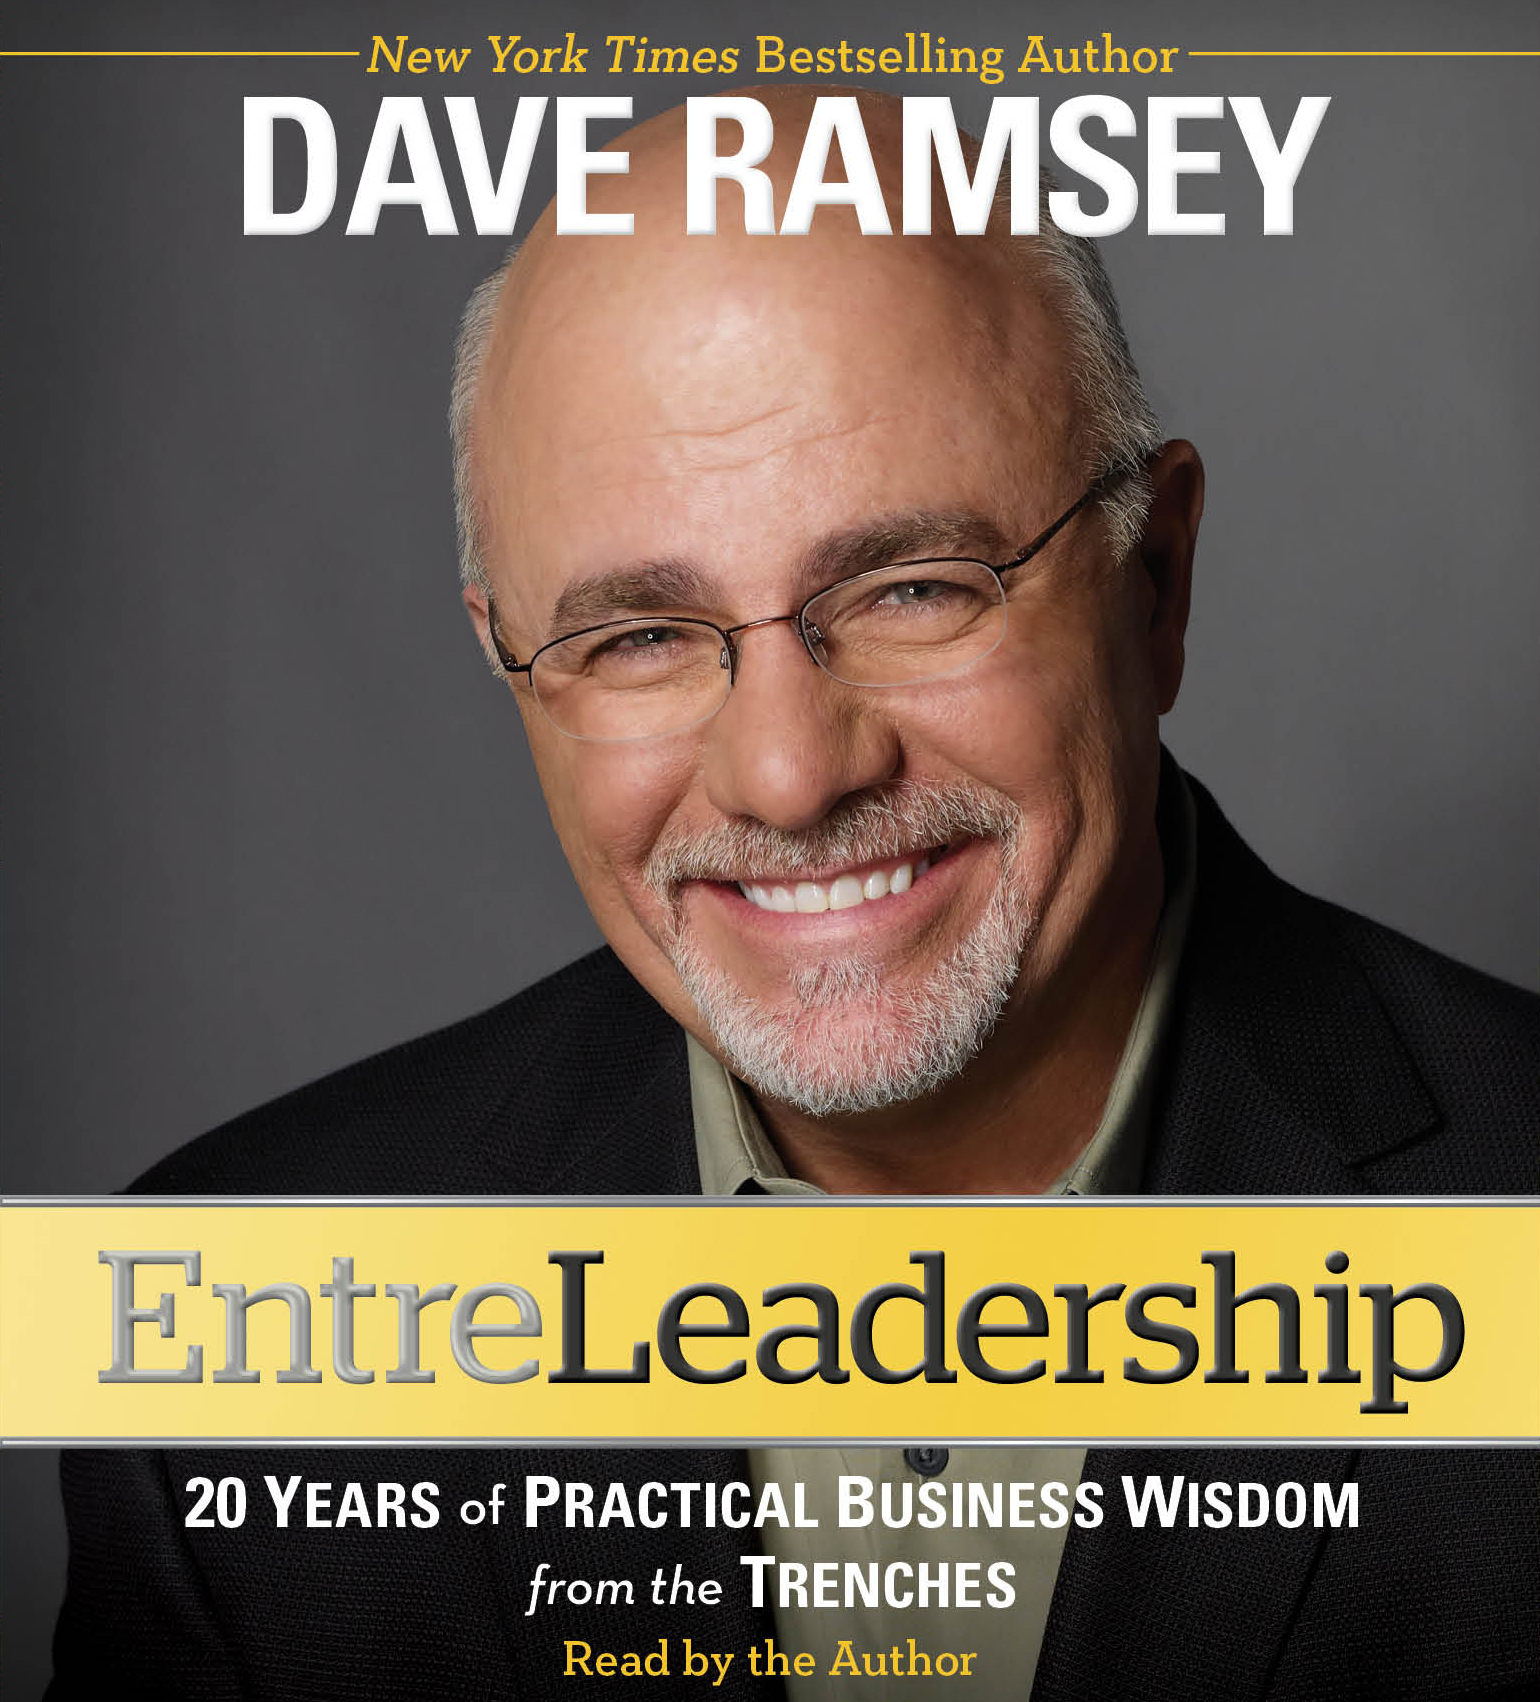 dave ramsey The dave ramsey show is your daily dose of real talk about life and money now you can get the show when and where you want it dave ramsey is america's trusted money expert.